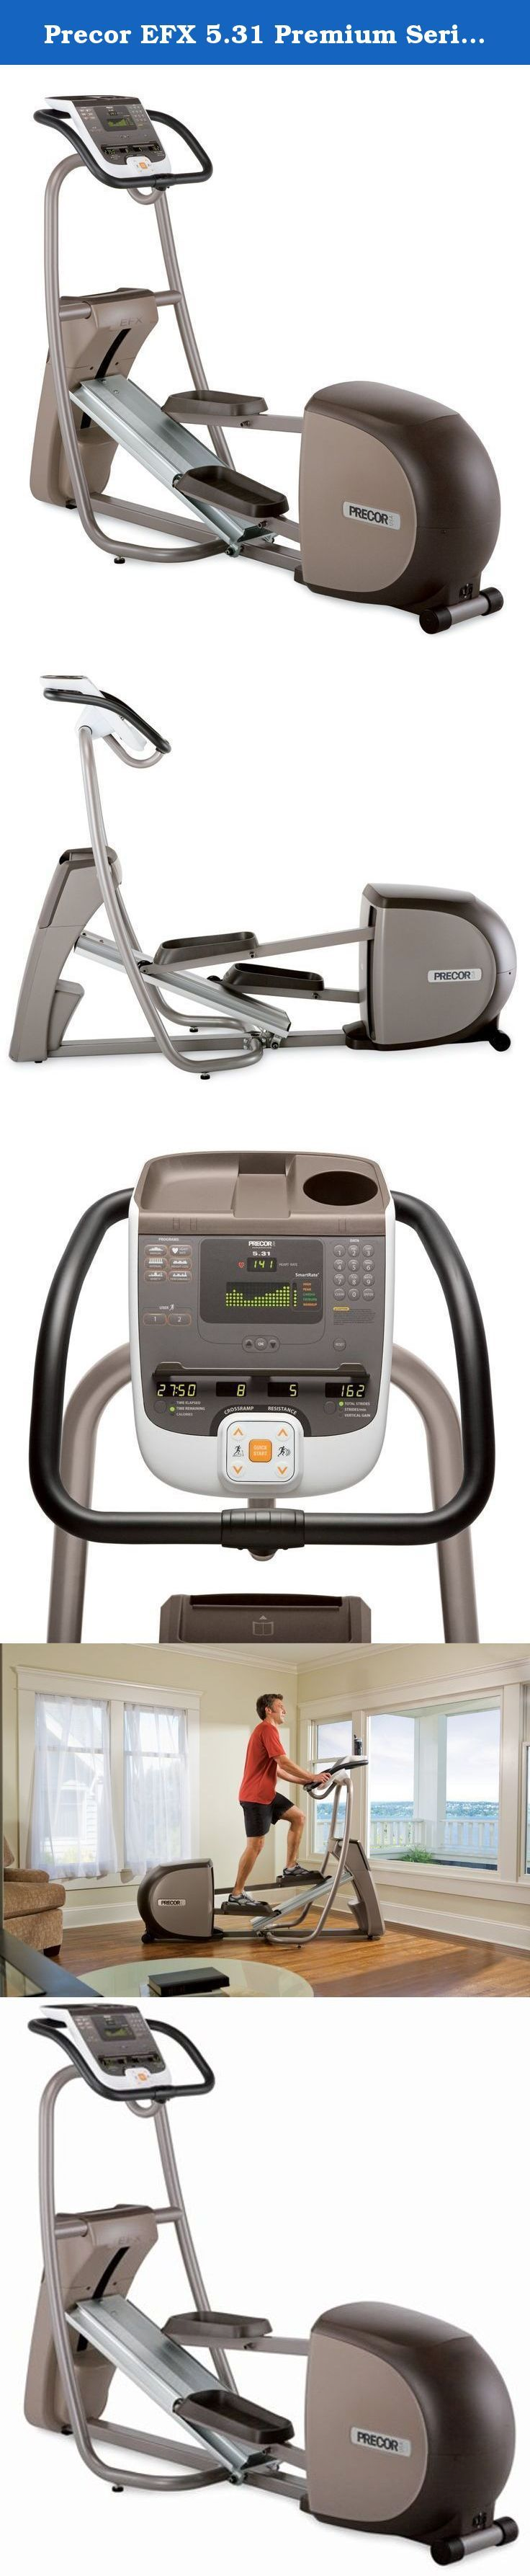 Precor EFX 5.31 Premium Series Elliptical Fitness Crosstrainer. Focus your workouts on toning muscles while building cardio endurance, with the premium Precor EFX 5.31. The Precor EFX 5.31 Elliptical Fitness Crosstrainer provides smooth, natural, low-impact workouts that help you get results.